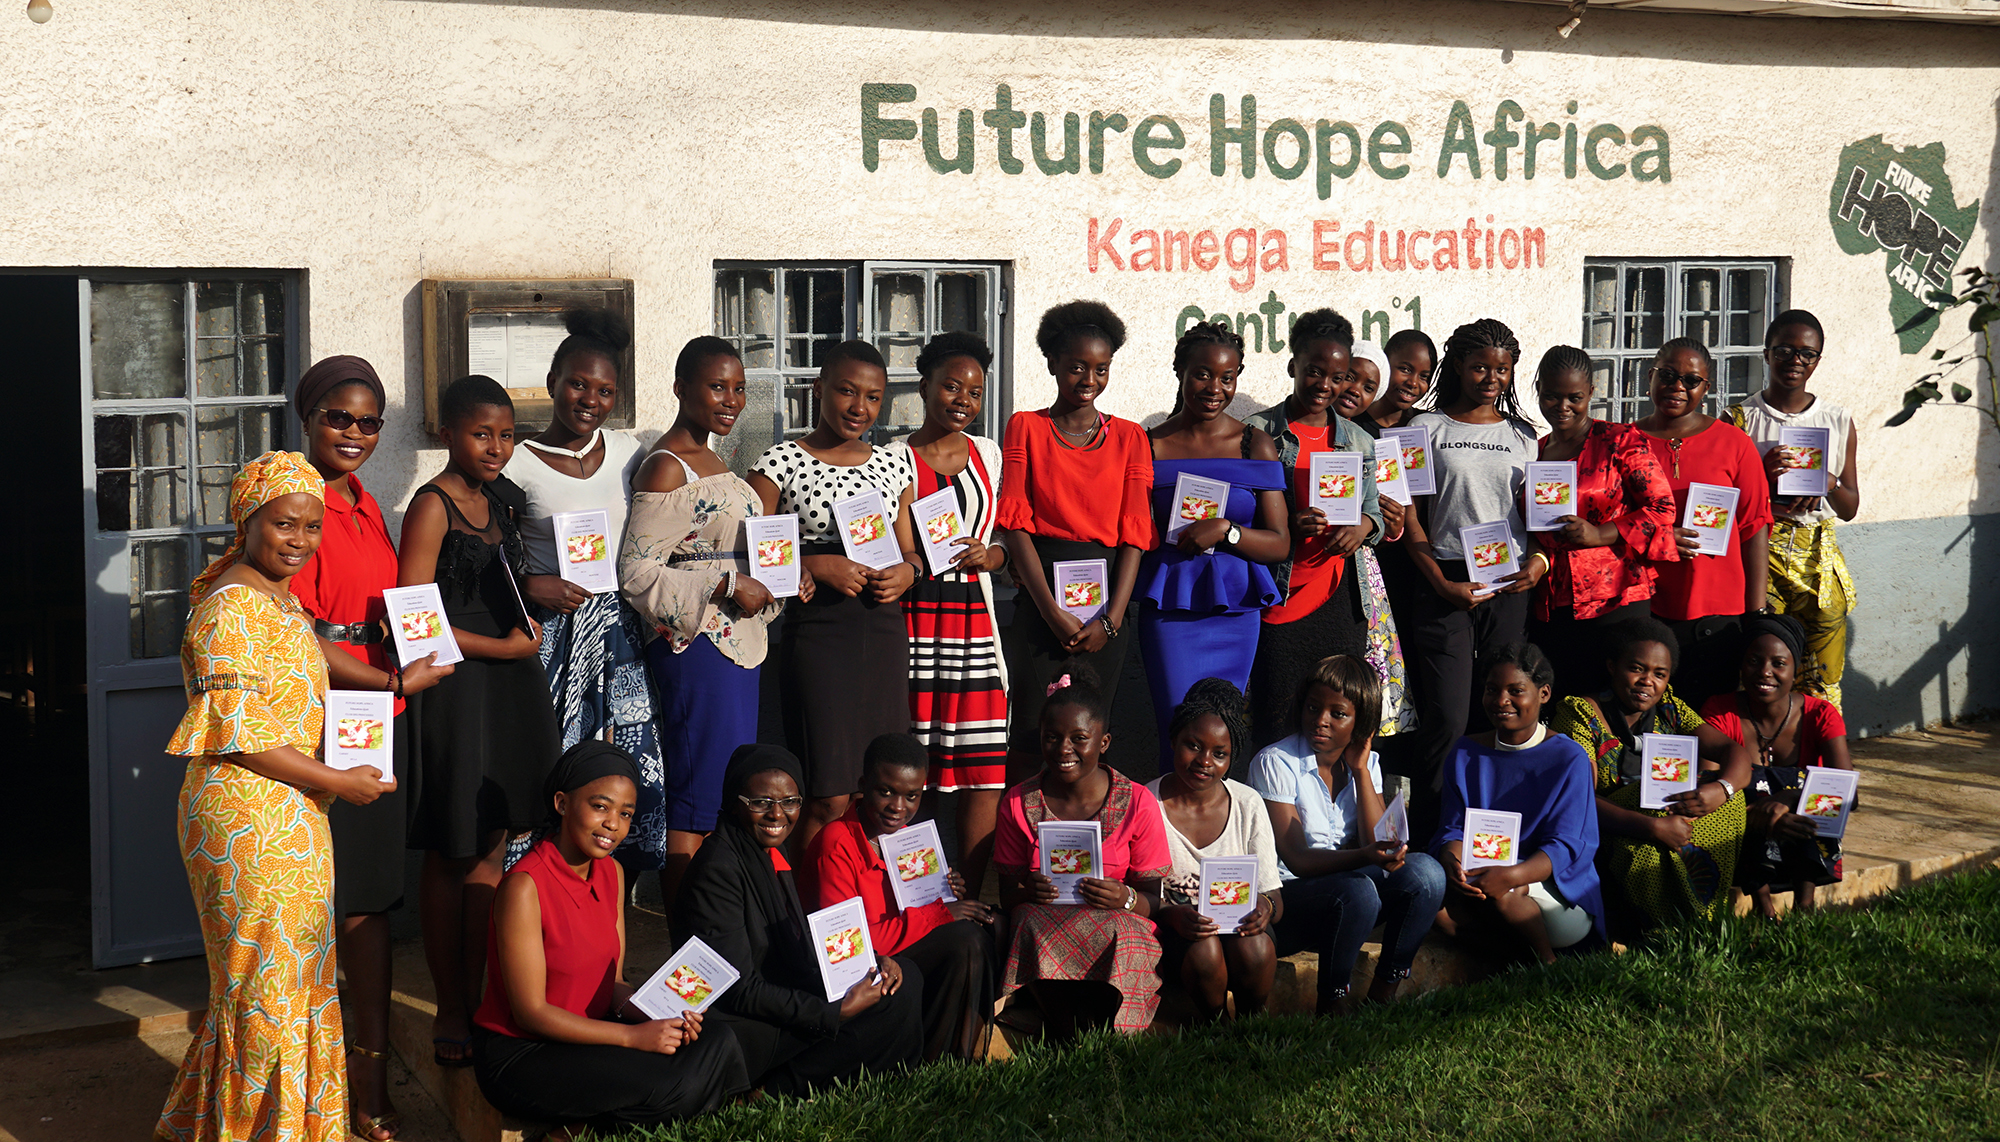 Future Hope Africa's Princess Club brings young women together to understand their value to God and the difference they can make in the world.